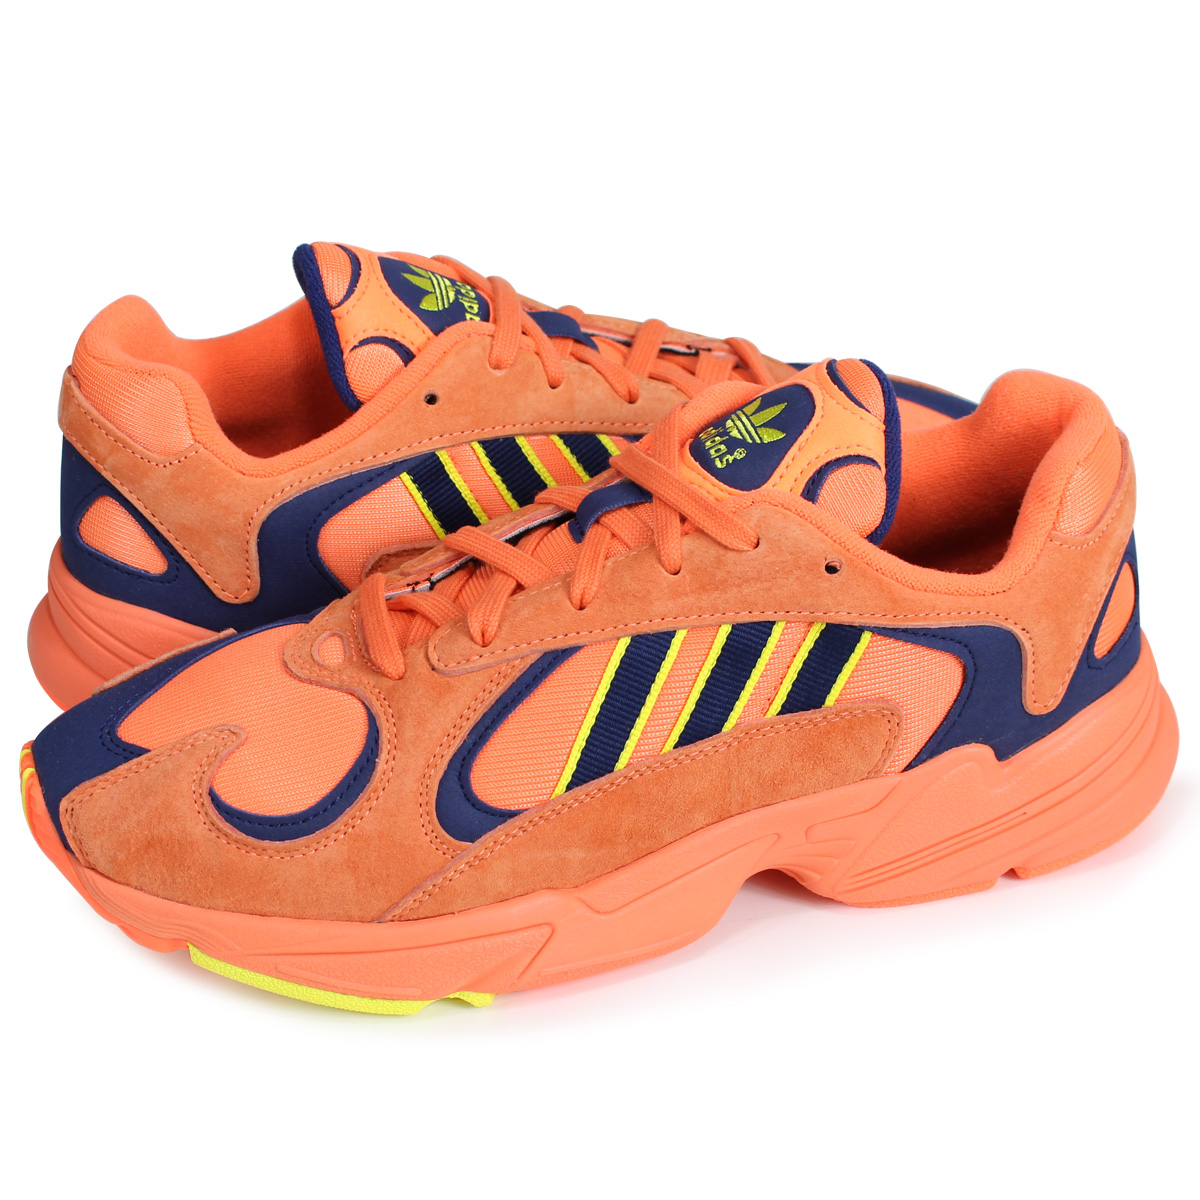 check out 81977 63993 adidas originals YUNG-1 Adidas originals sneakers young people 1 mens B37613  orange load planned Shinnyu load in reservation product 77 containing